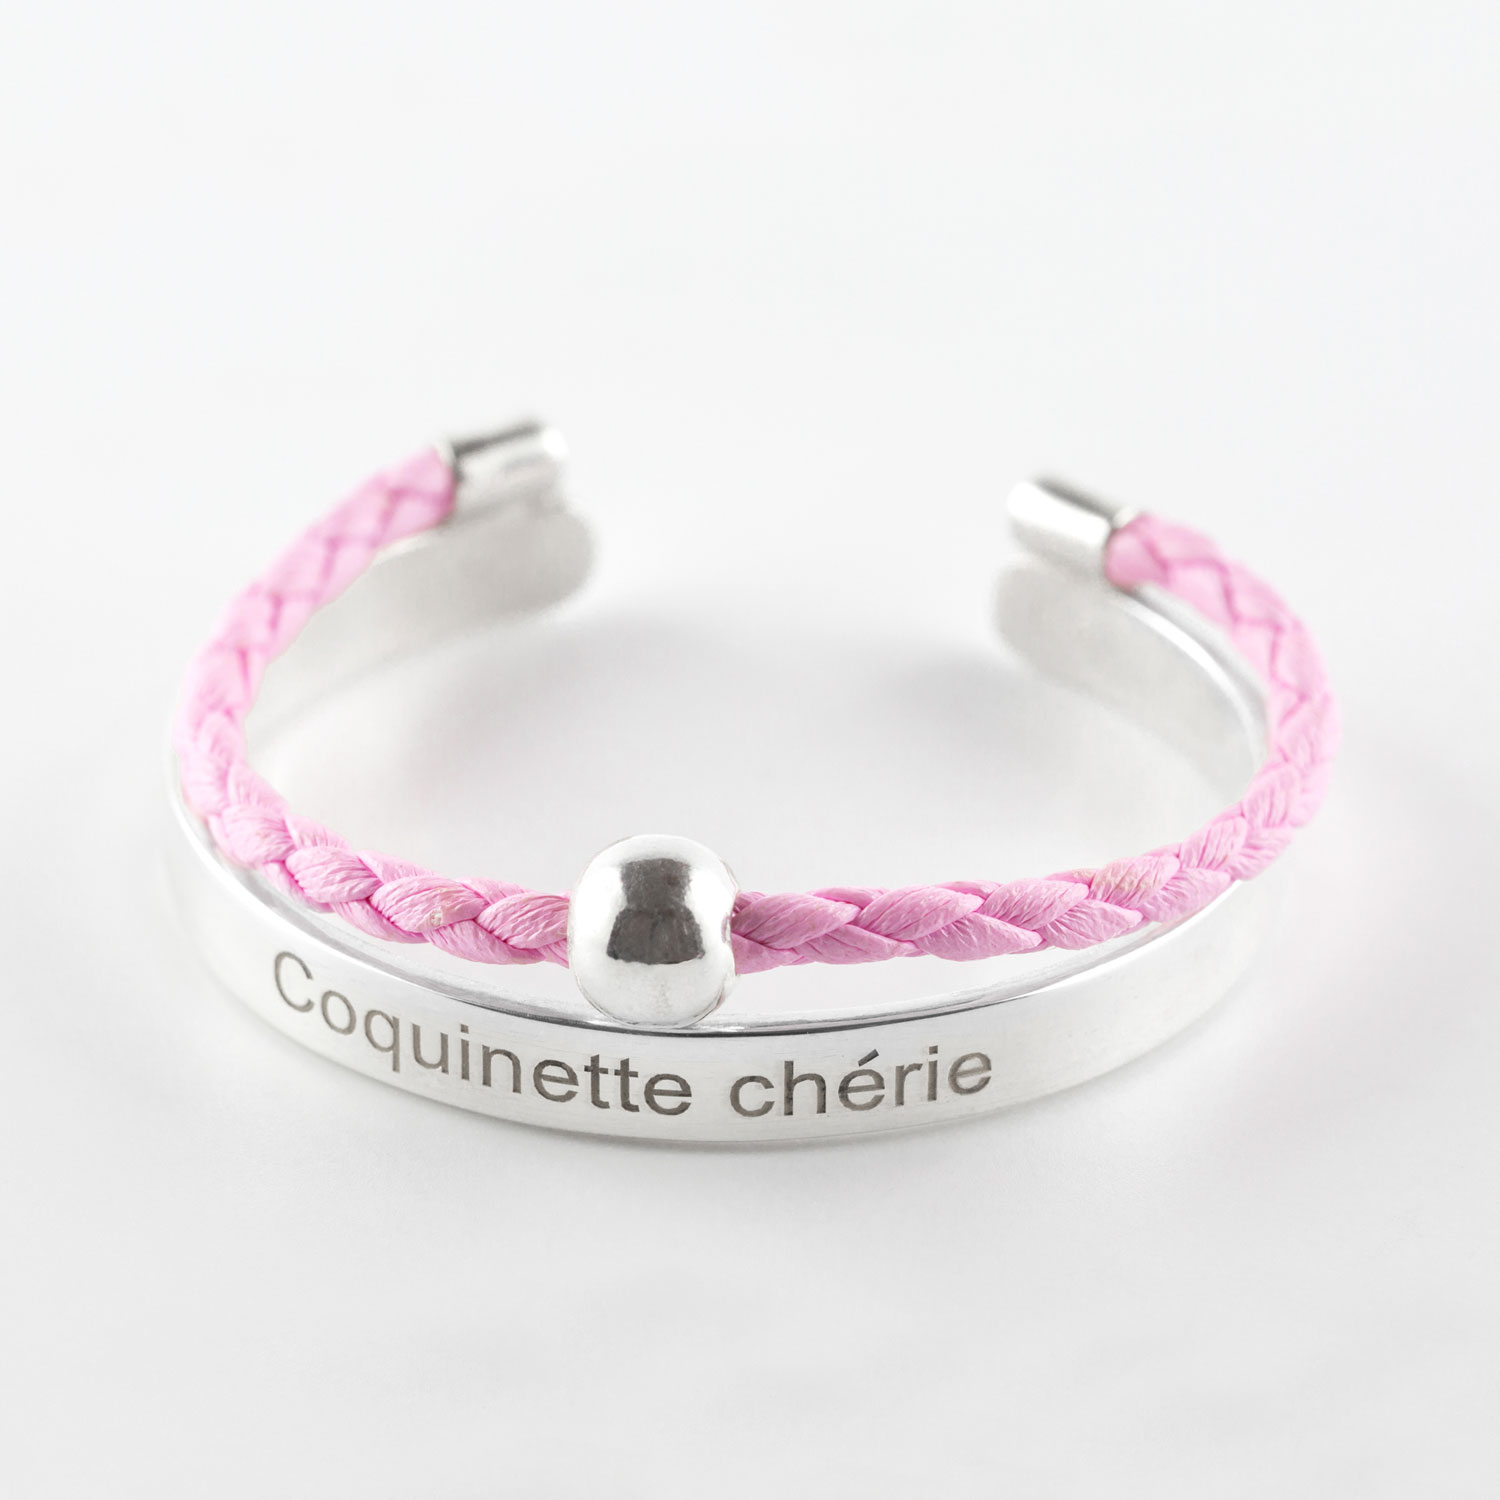 Child's « Coquinette chérie » (Darling little monkey) bangle in silver with pink leather cord